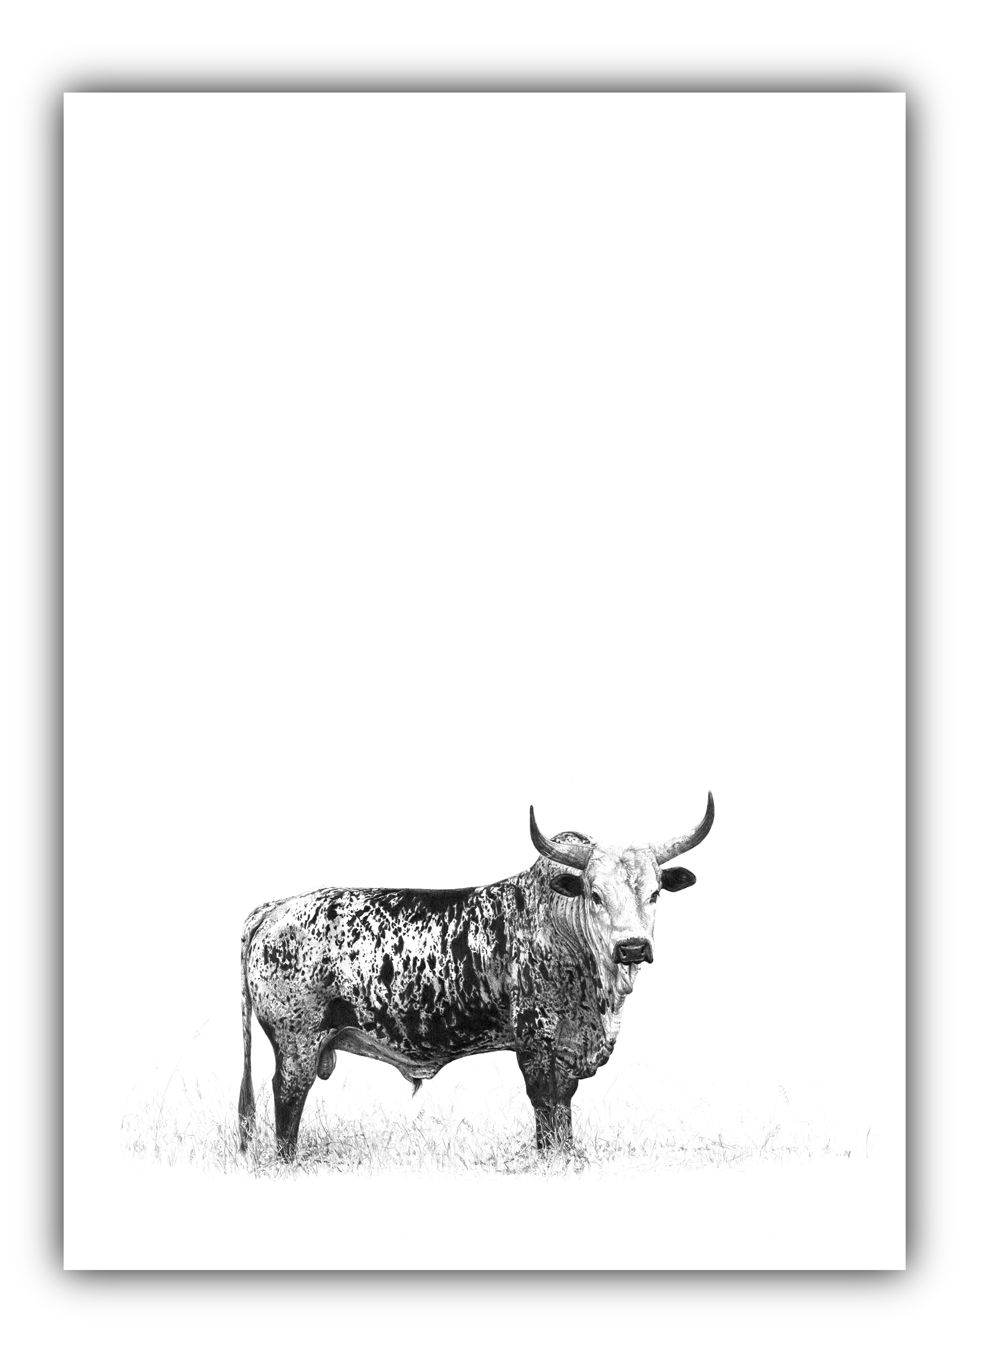 Incredible pencil sketch of an Nguni Bull by amazing South